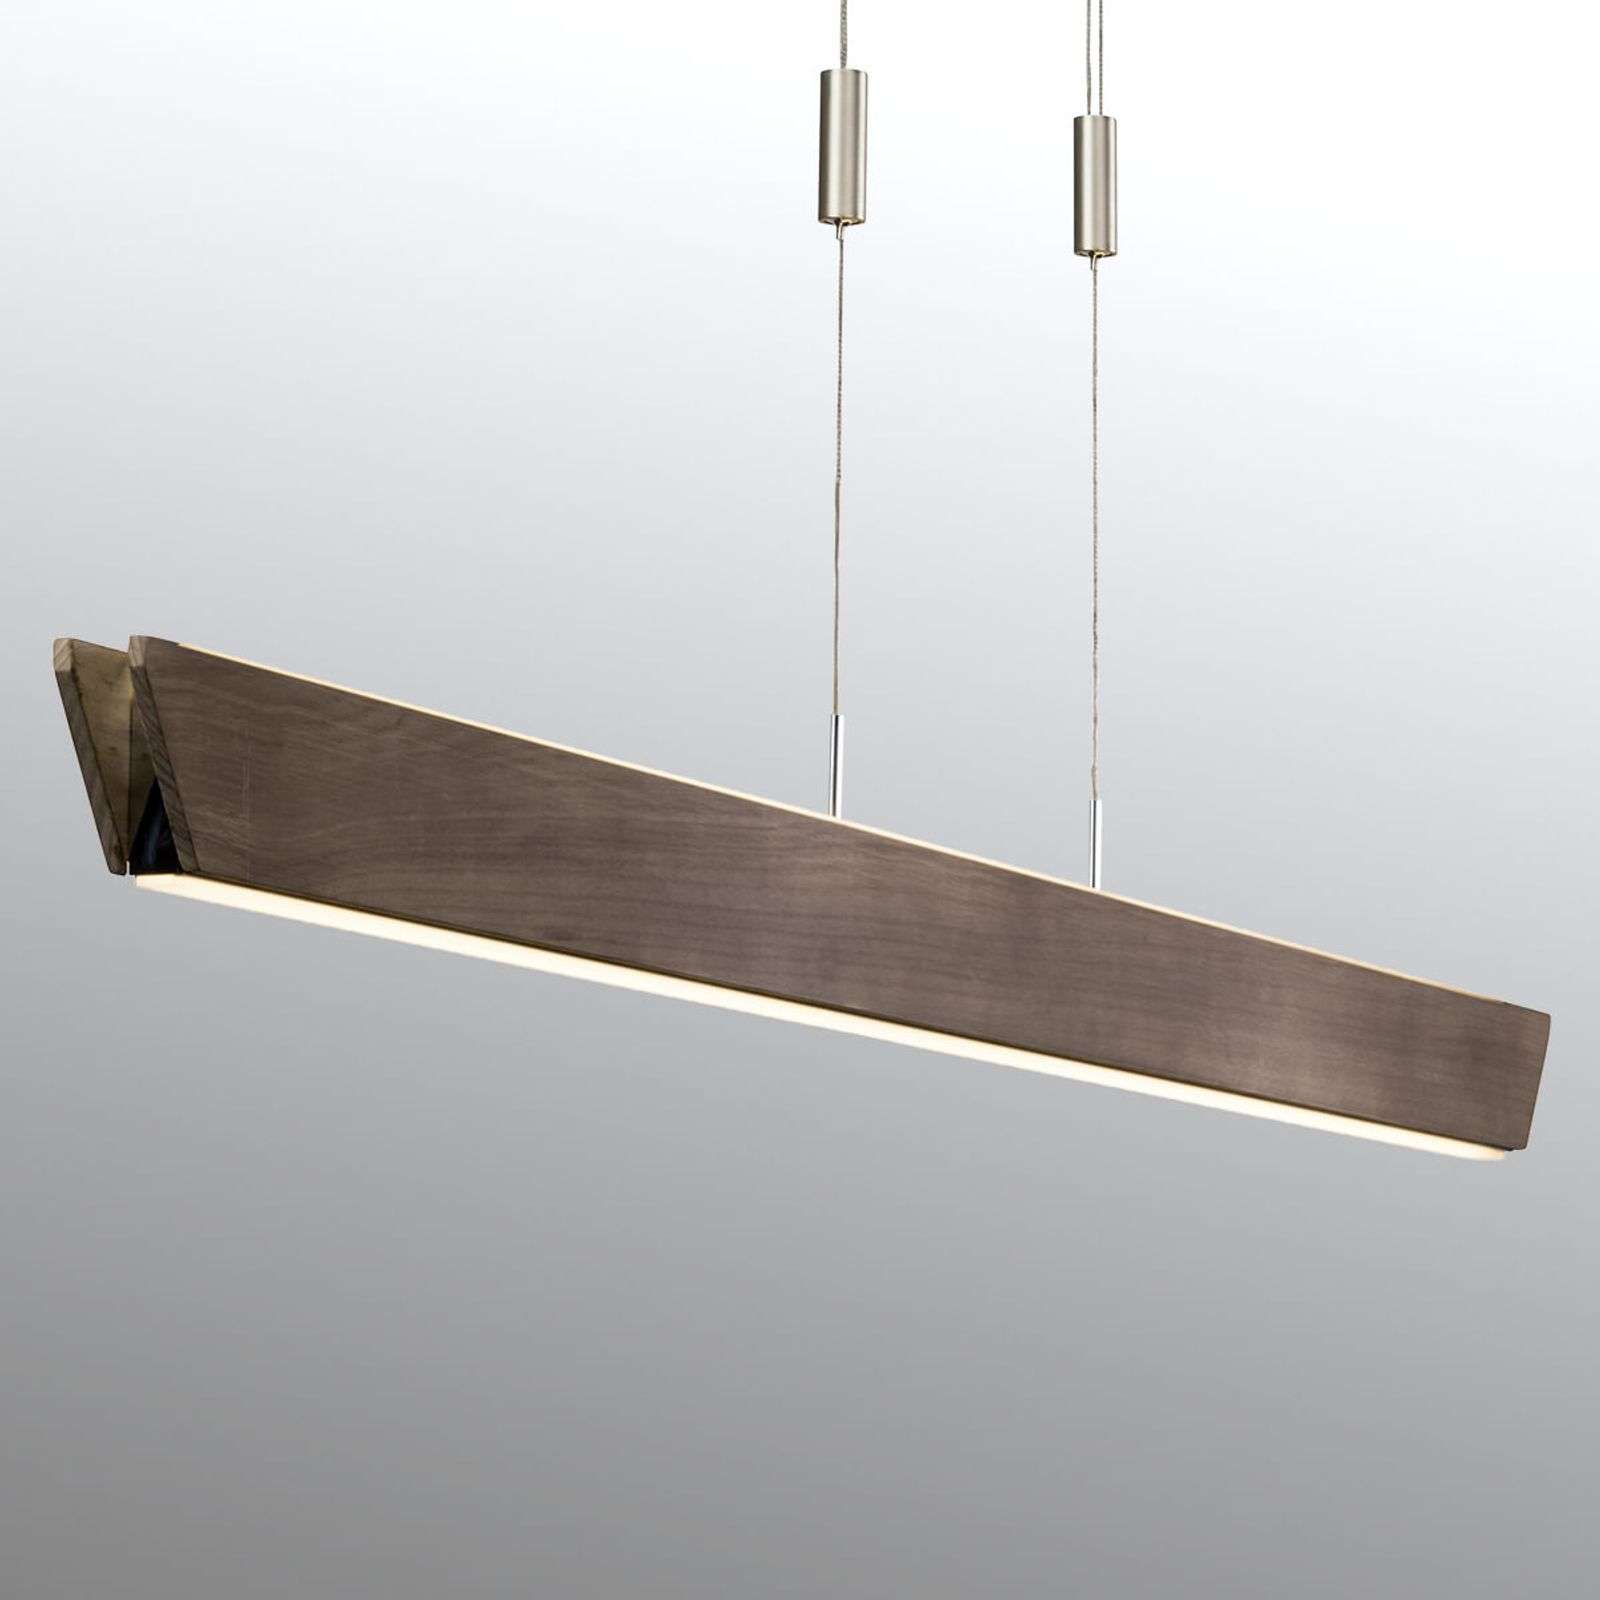 Suspension LED Unique, 130 cm, hauteur réglable